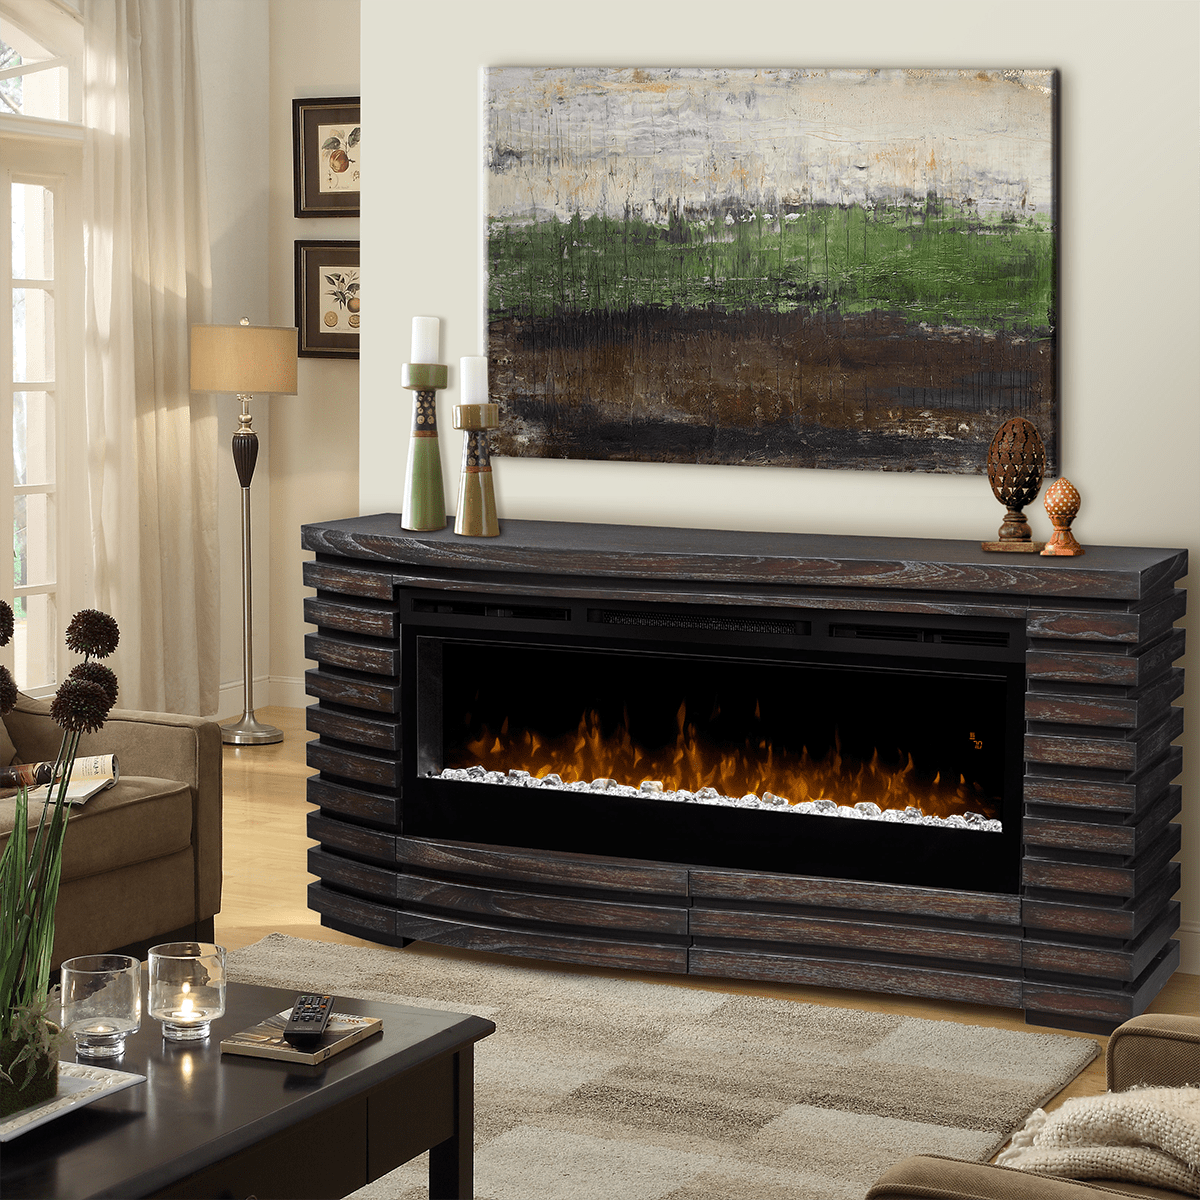 Dimplex Elliot Electric Fireplace Tv Stand Sylvane Garage Heaters With Thermostat 1